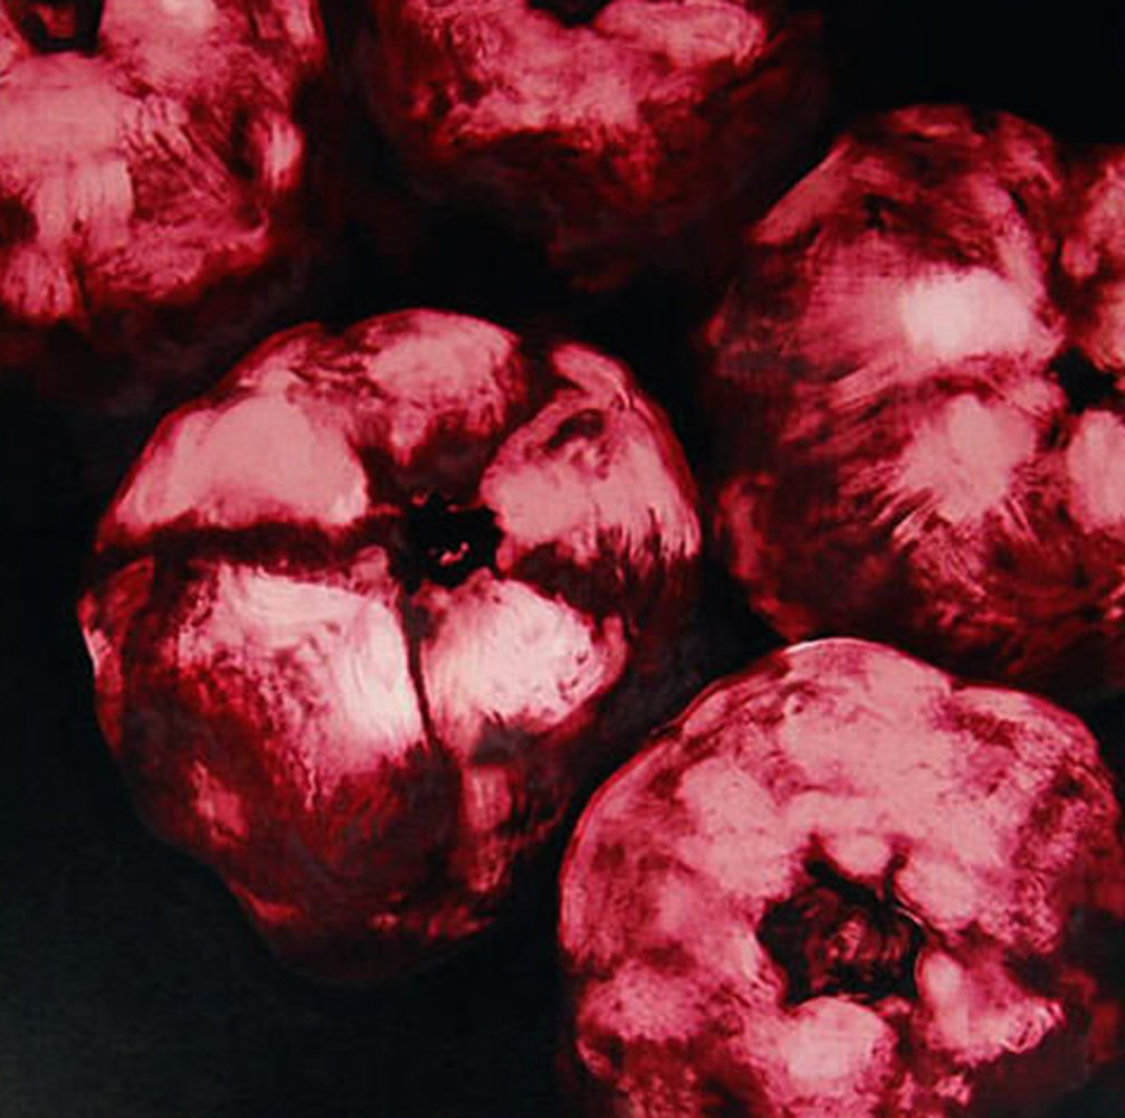 Pomegranates 1994 Limited Edition Print by Donald Sultan